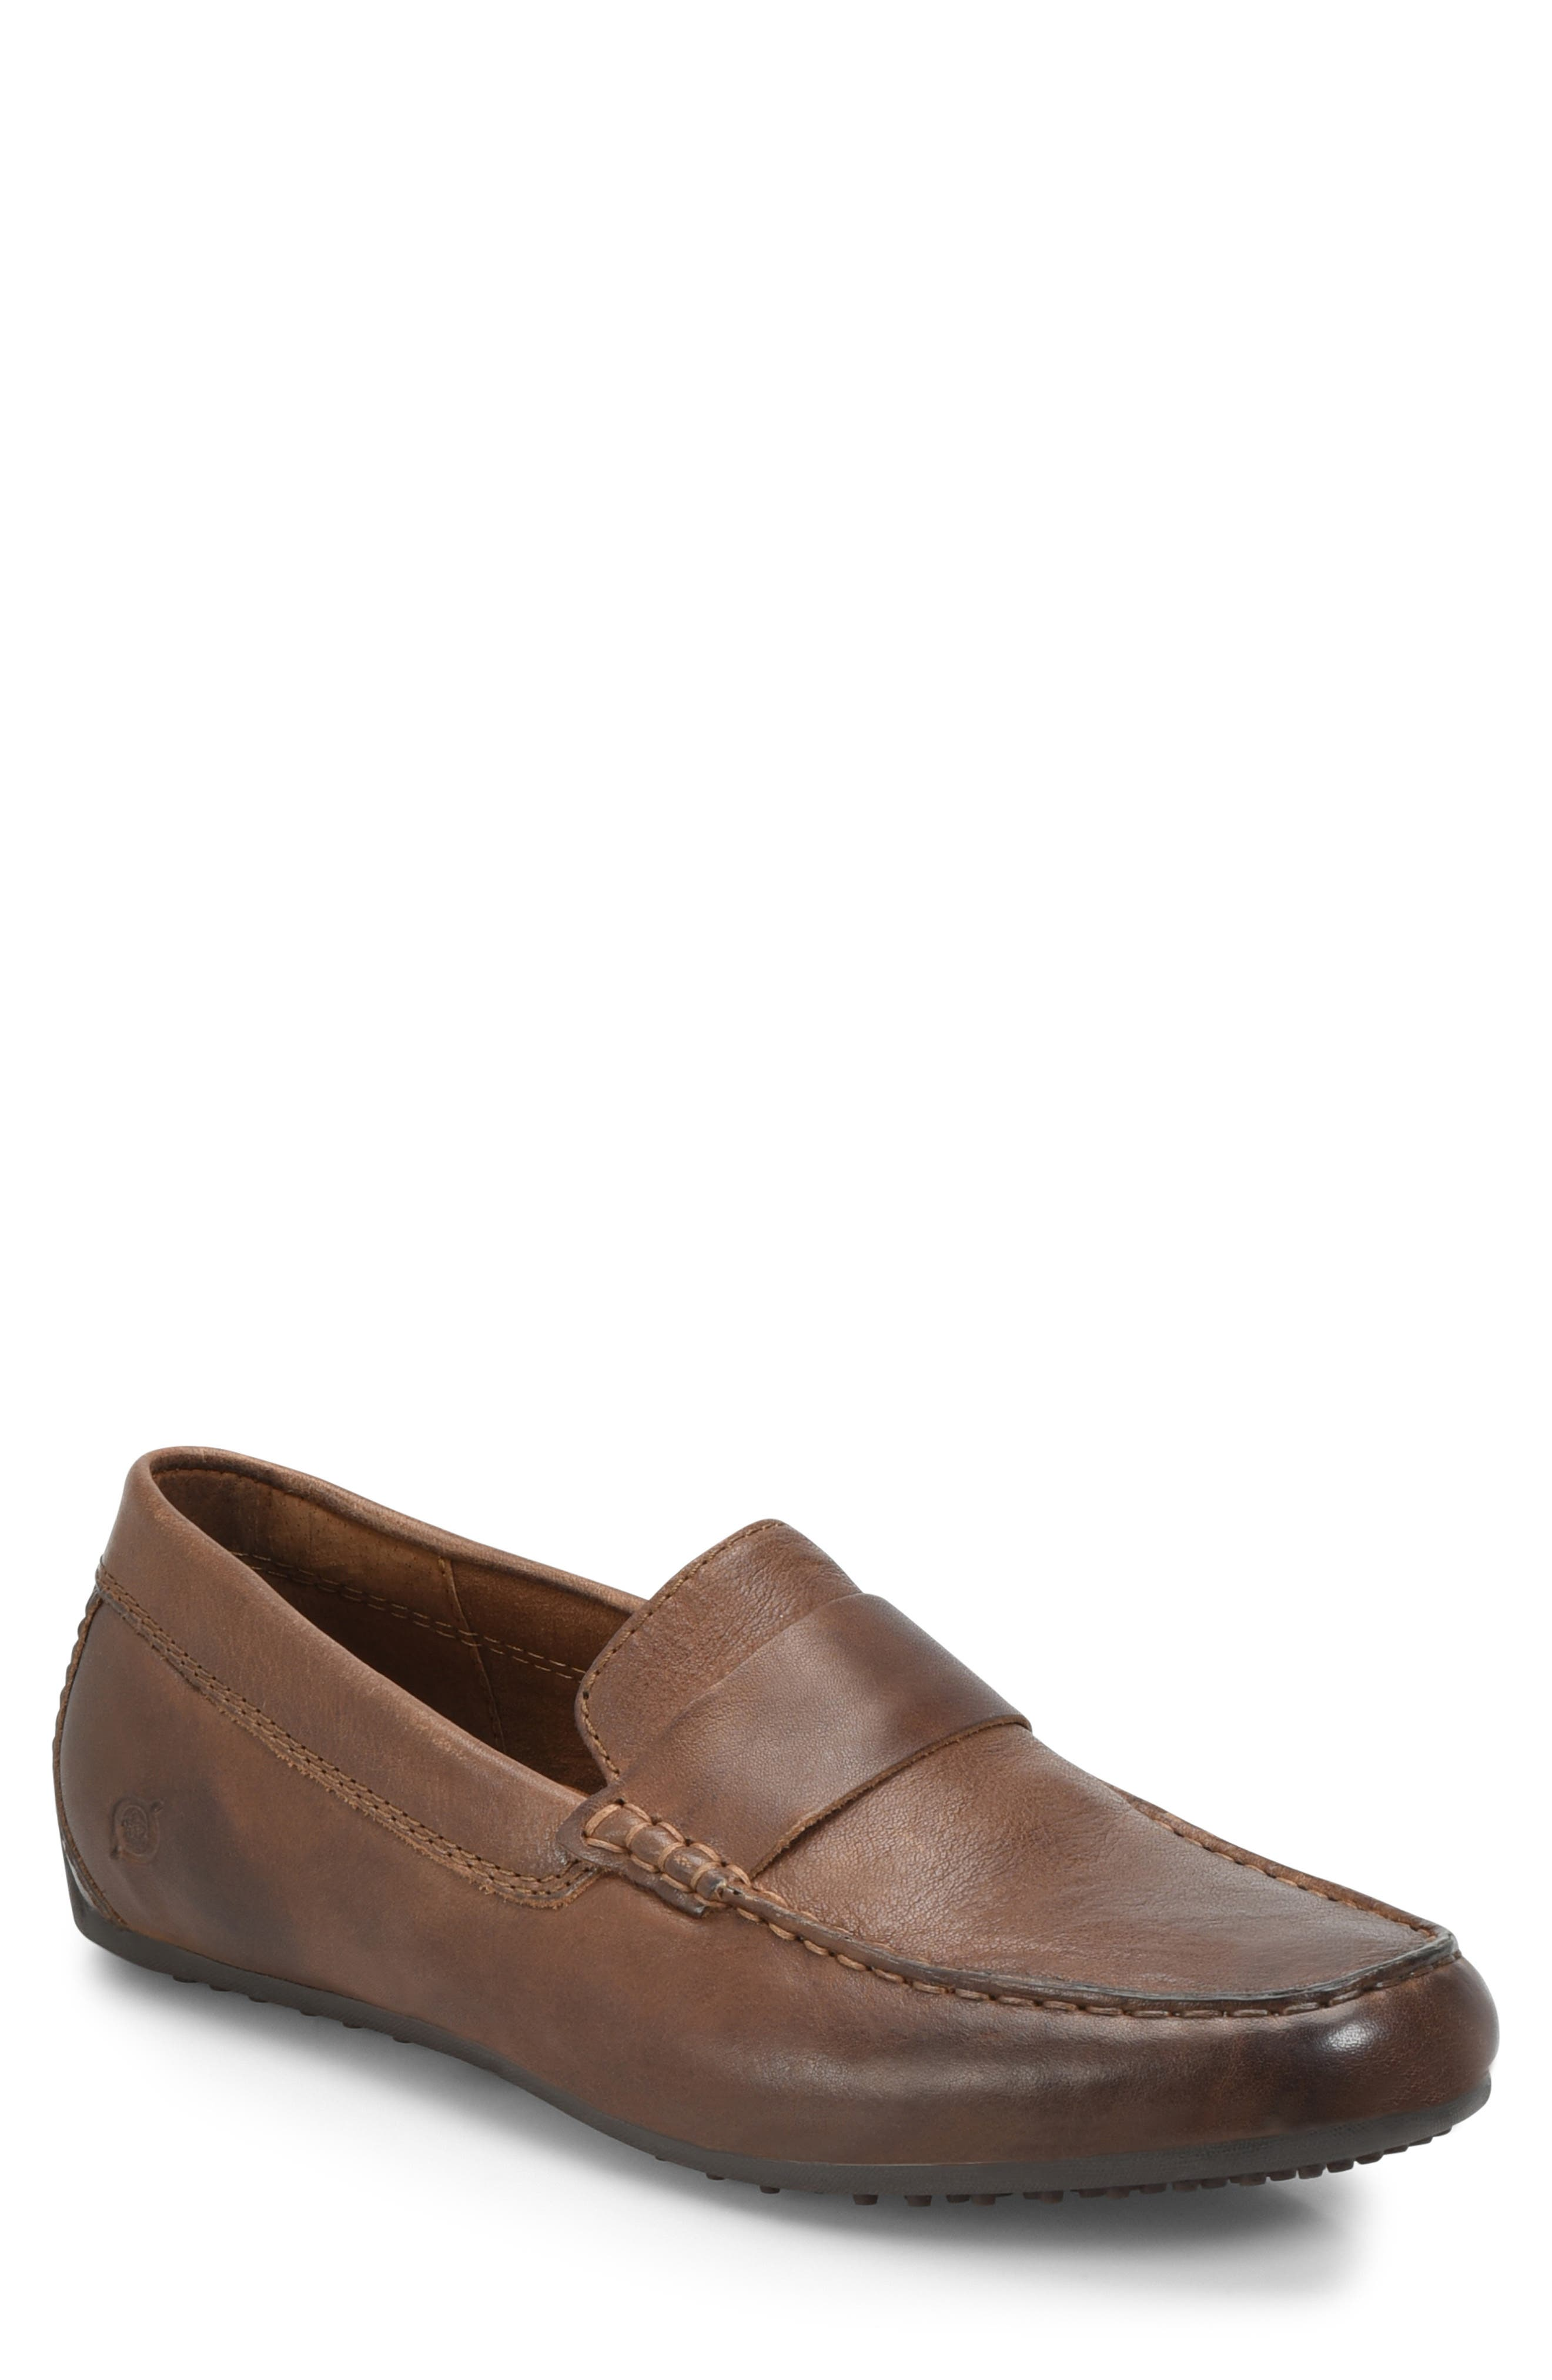 Ratner Driving Loafer,                         Main,                         color, BROWN LEATHER